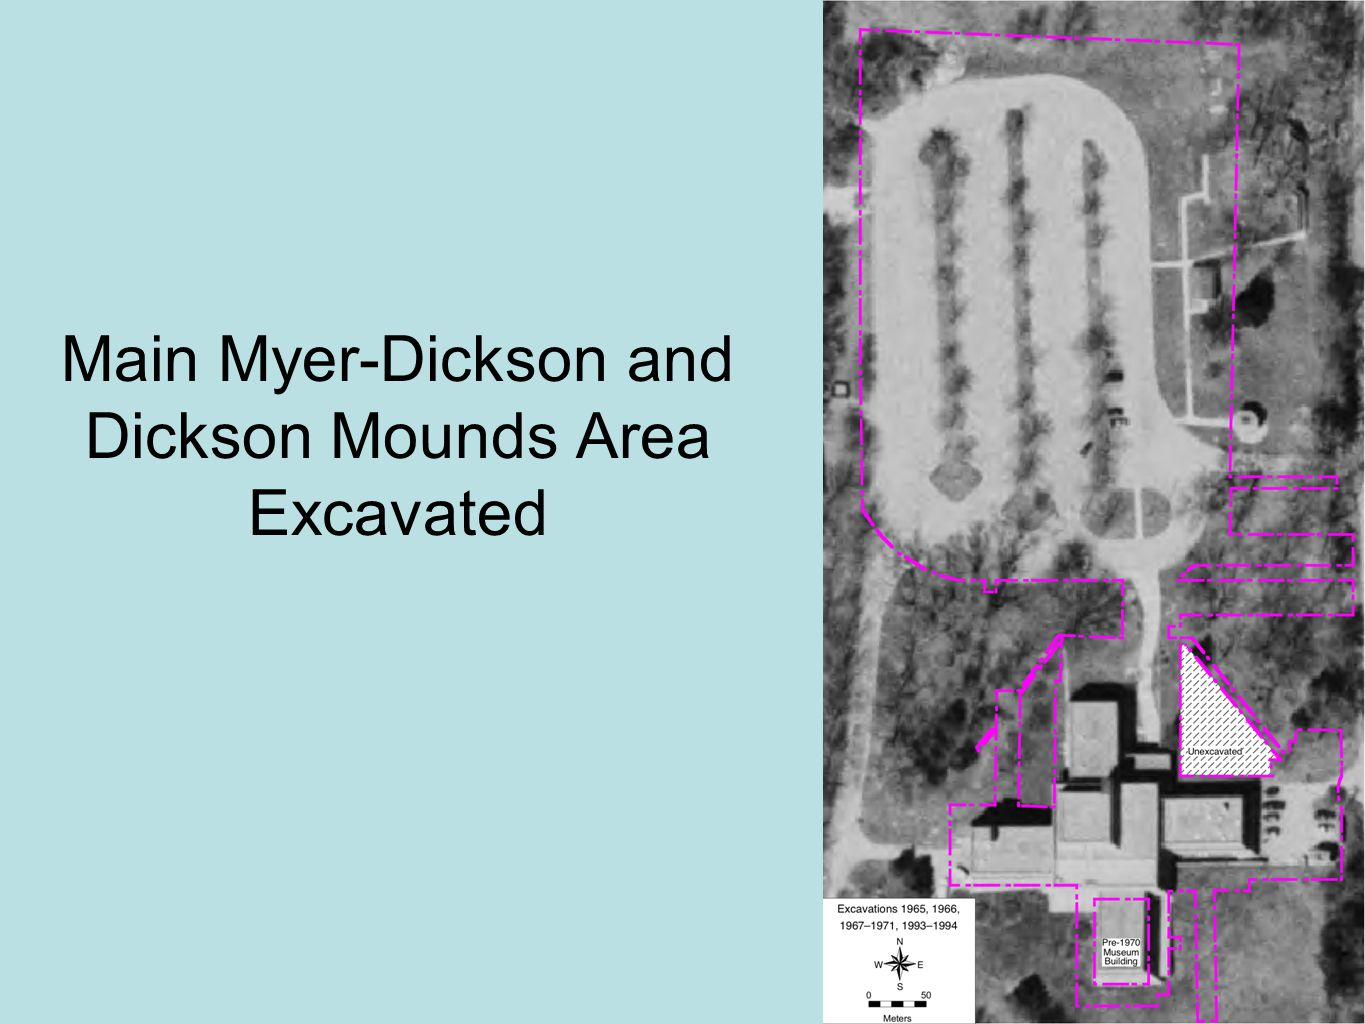 Main Myer-Dickson and Dickson Mounds Area Excavated